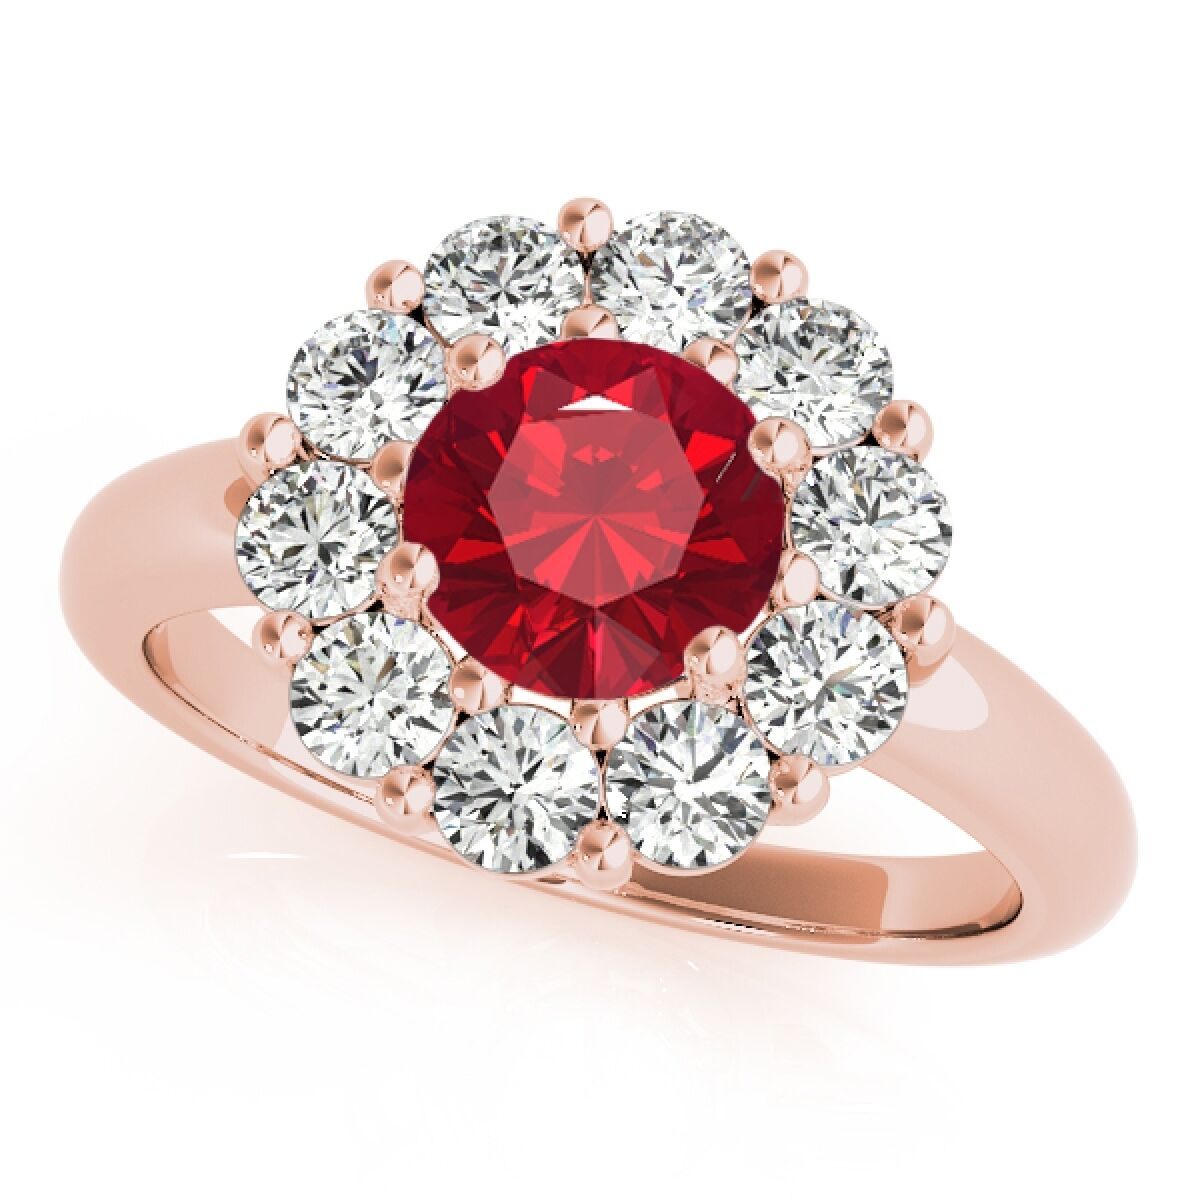 1.90Ct. Halo Ruby And Diamond Engagement Wedding Ring In 10K Solid pink gold